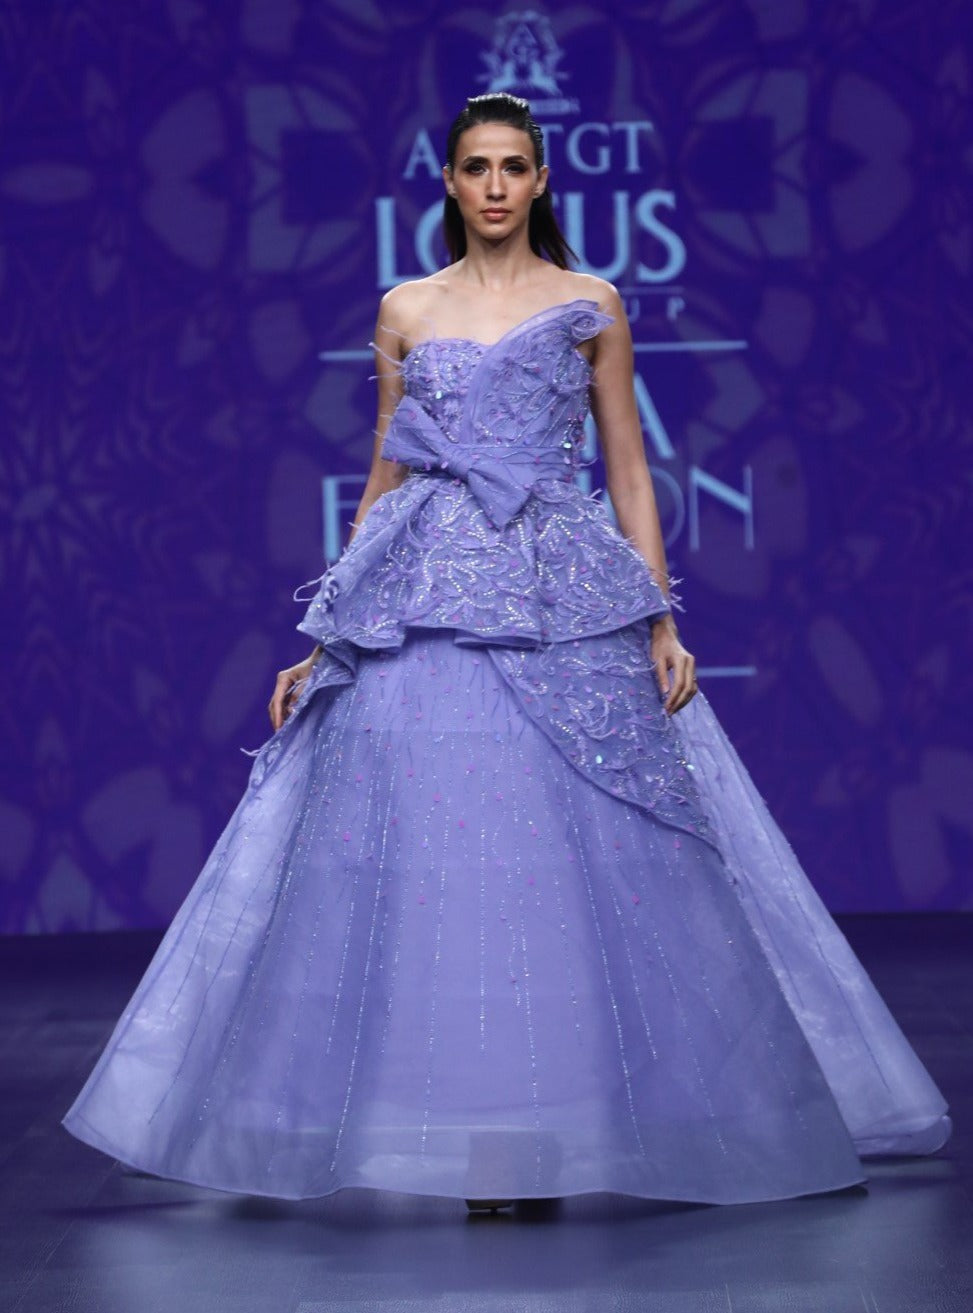 Agt By Amit Gt-Carlose 3D Flower Bow Ball Gown-INDIASPOPUP.COM